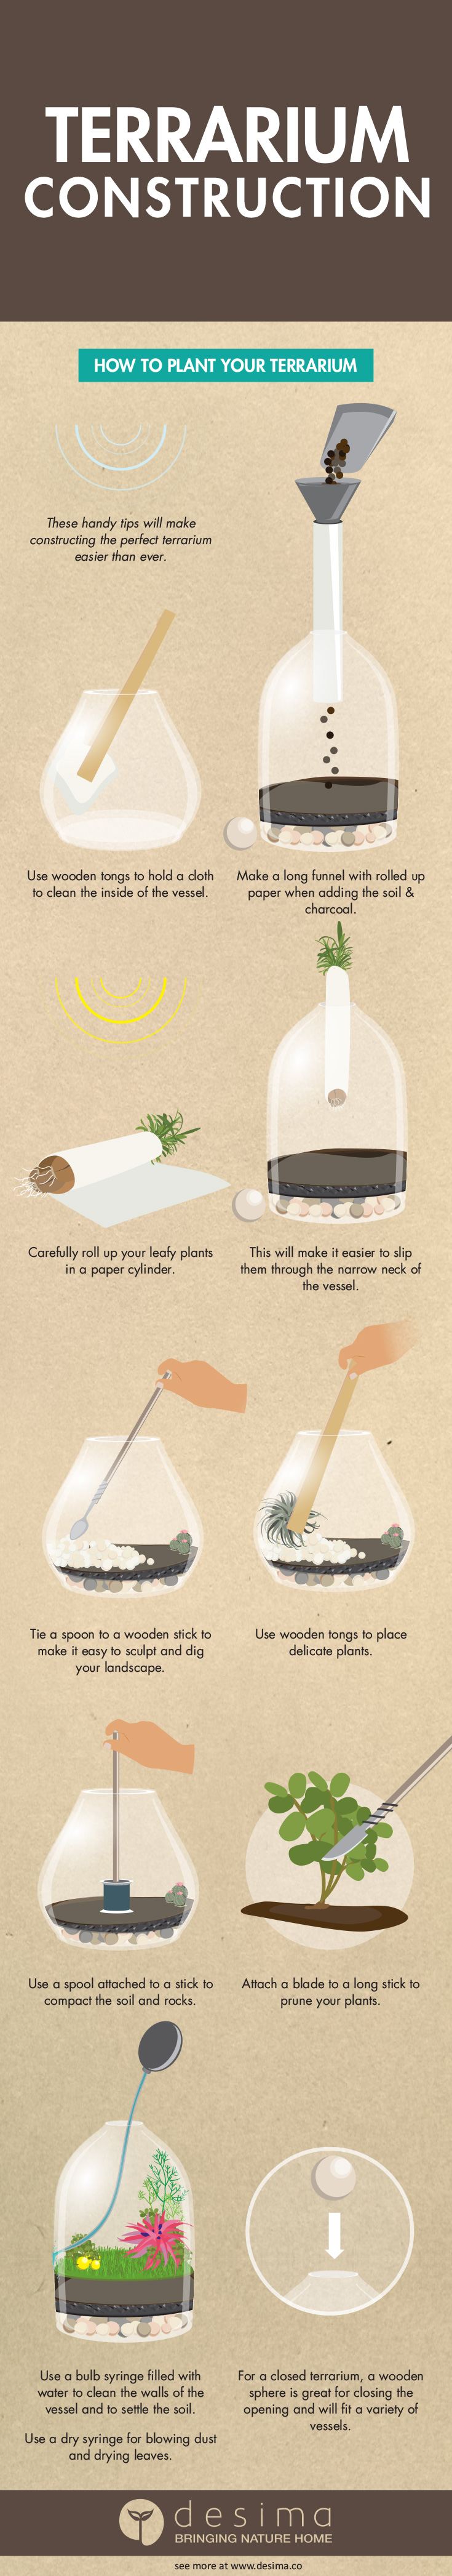 Terrarium Construction Infographic